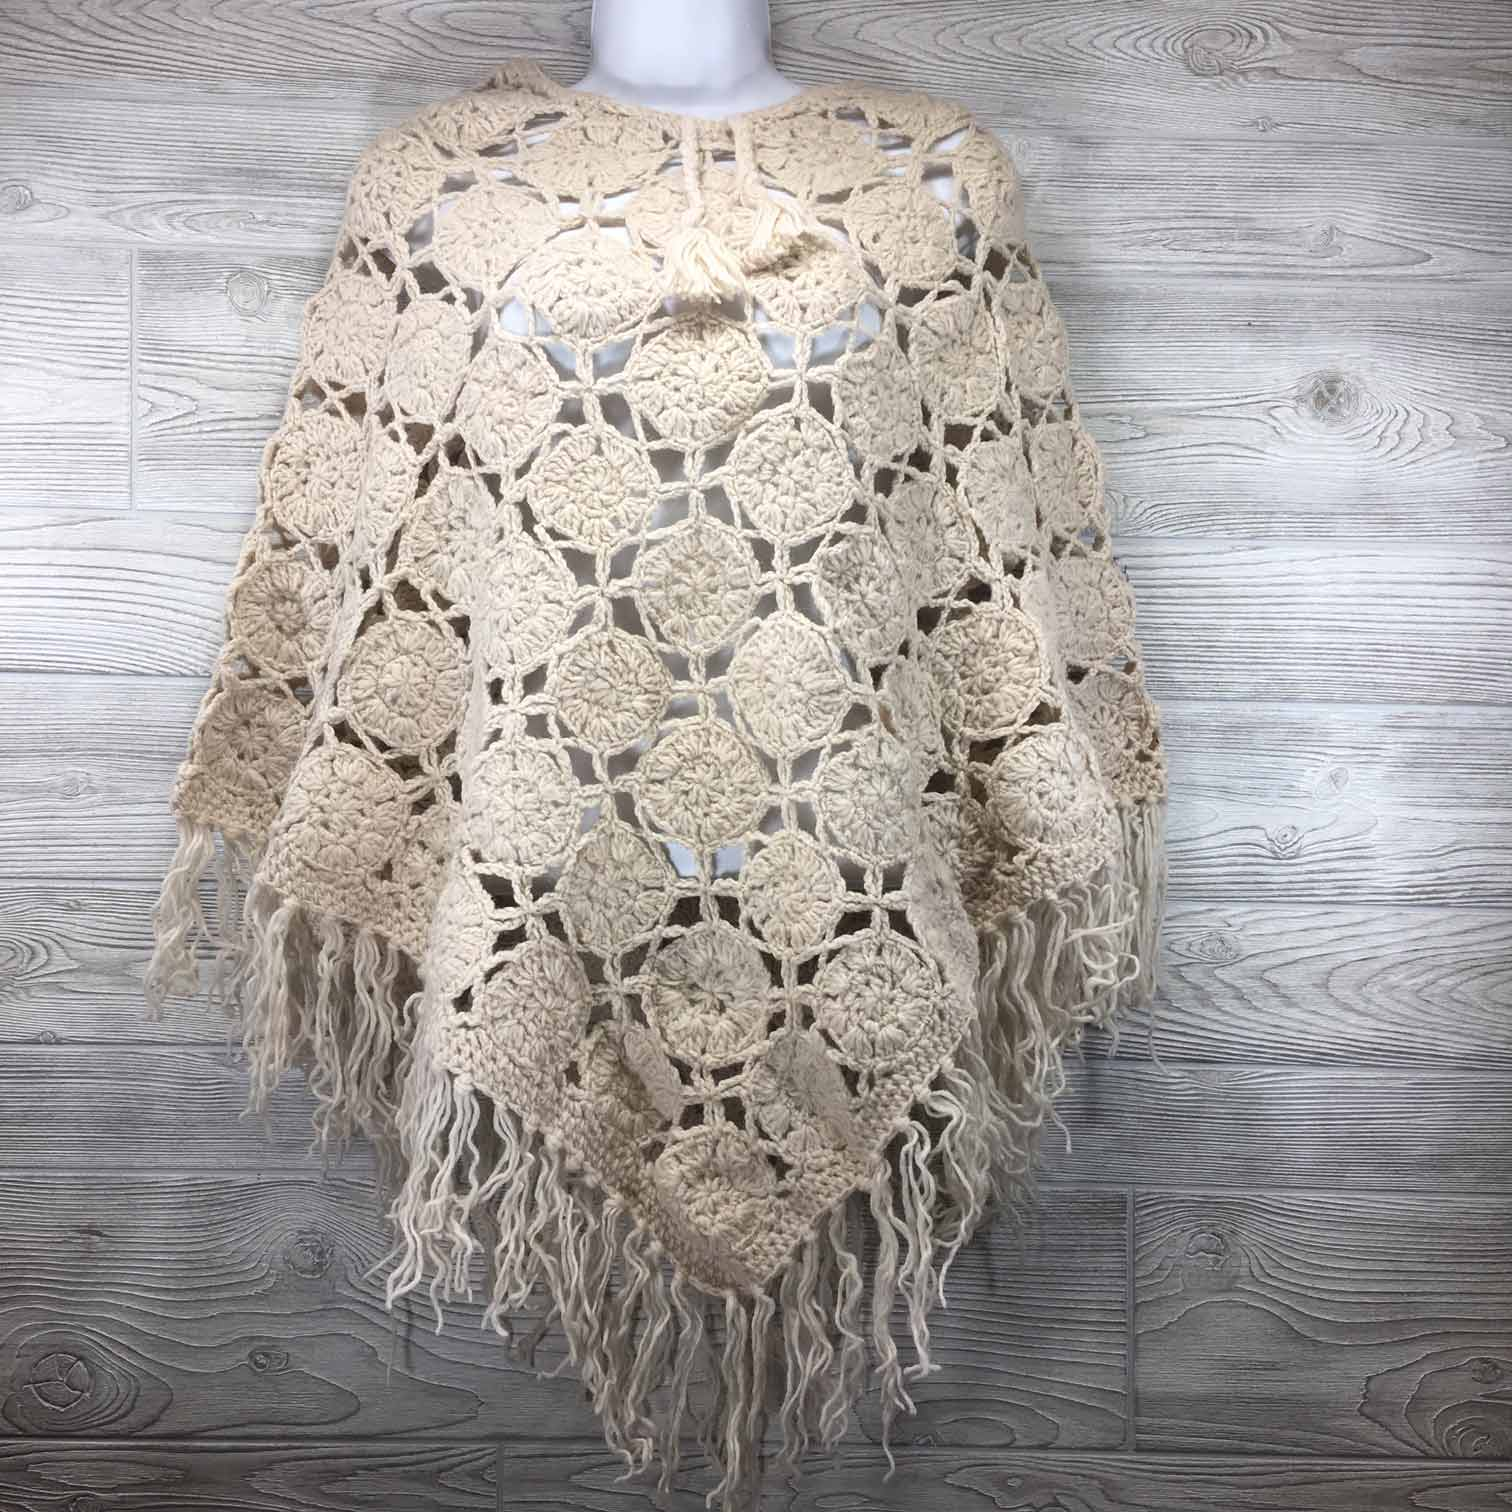 b3b8056b12d02 Women s Crochet Granny Square Boho Wool Poncho with Fringes - One Size Fits  Most - White